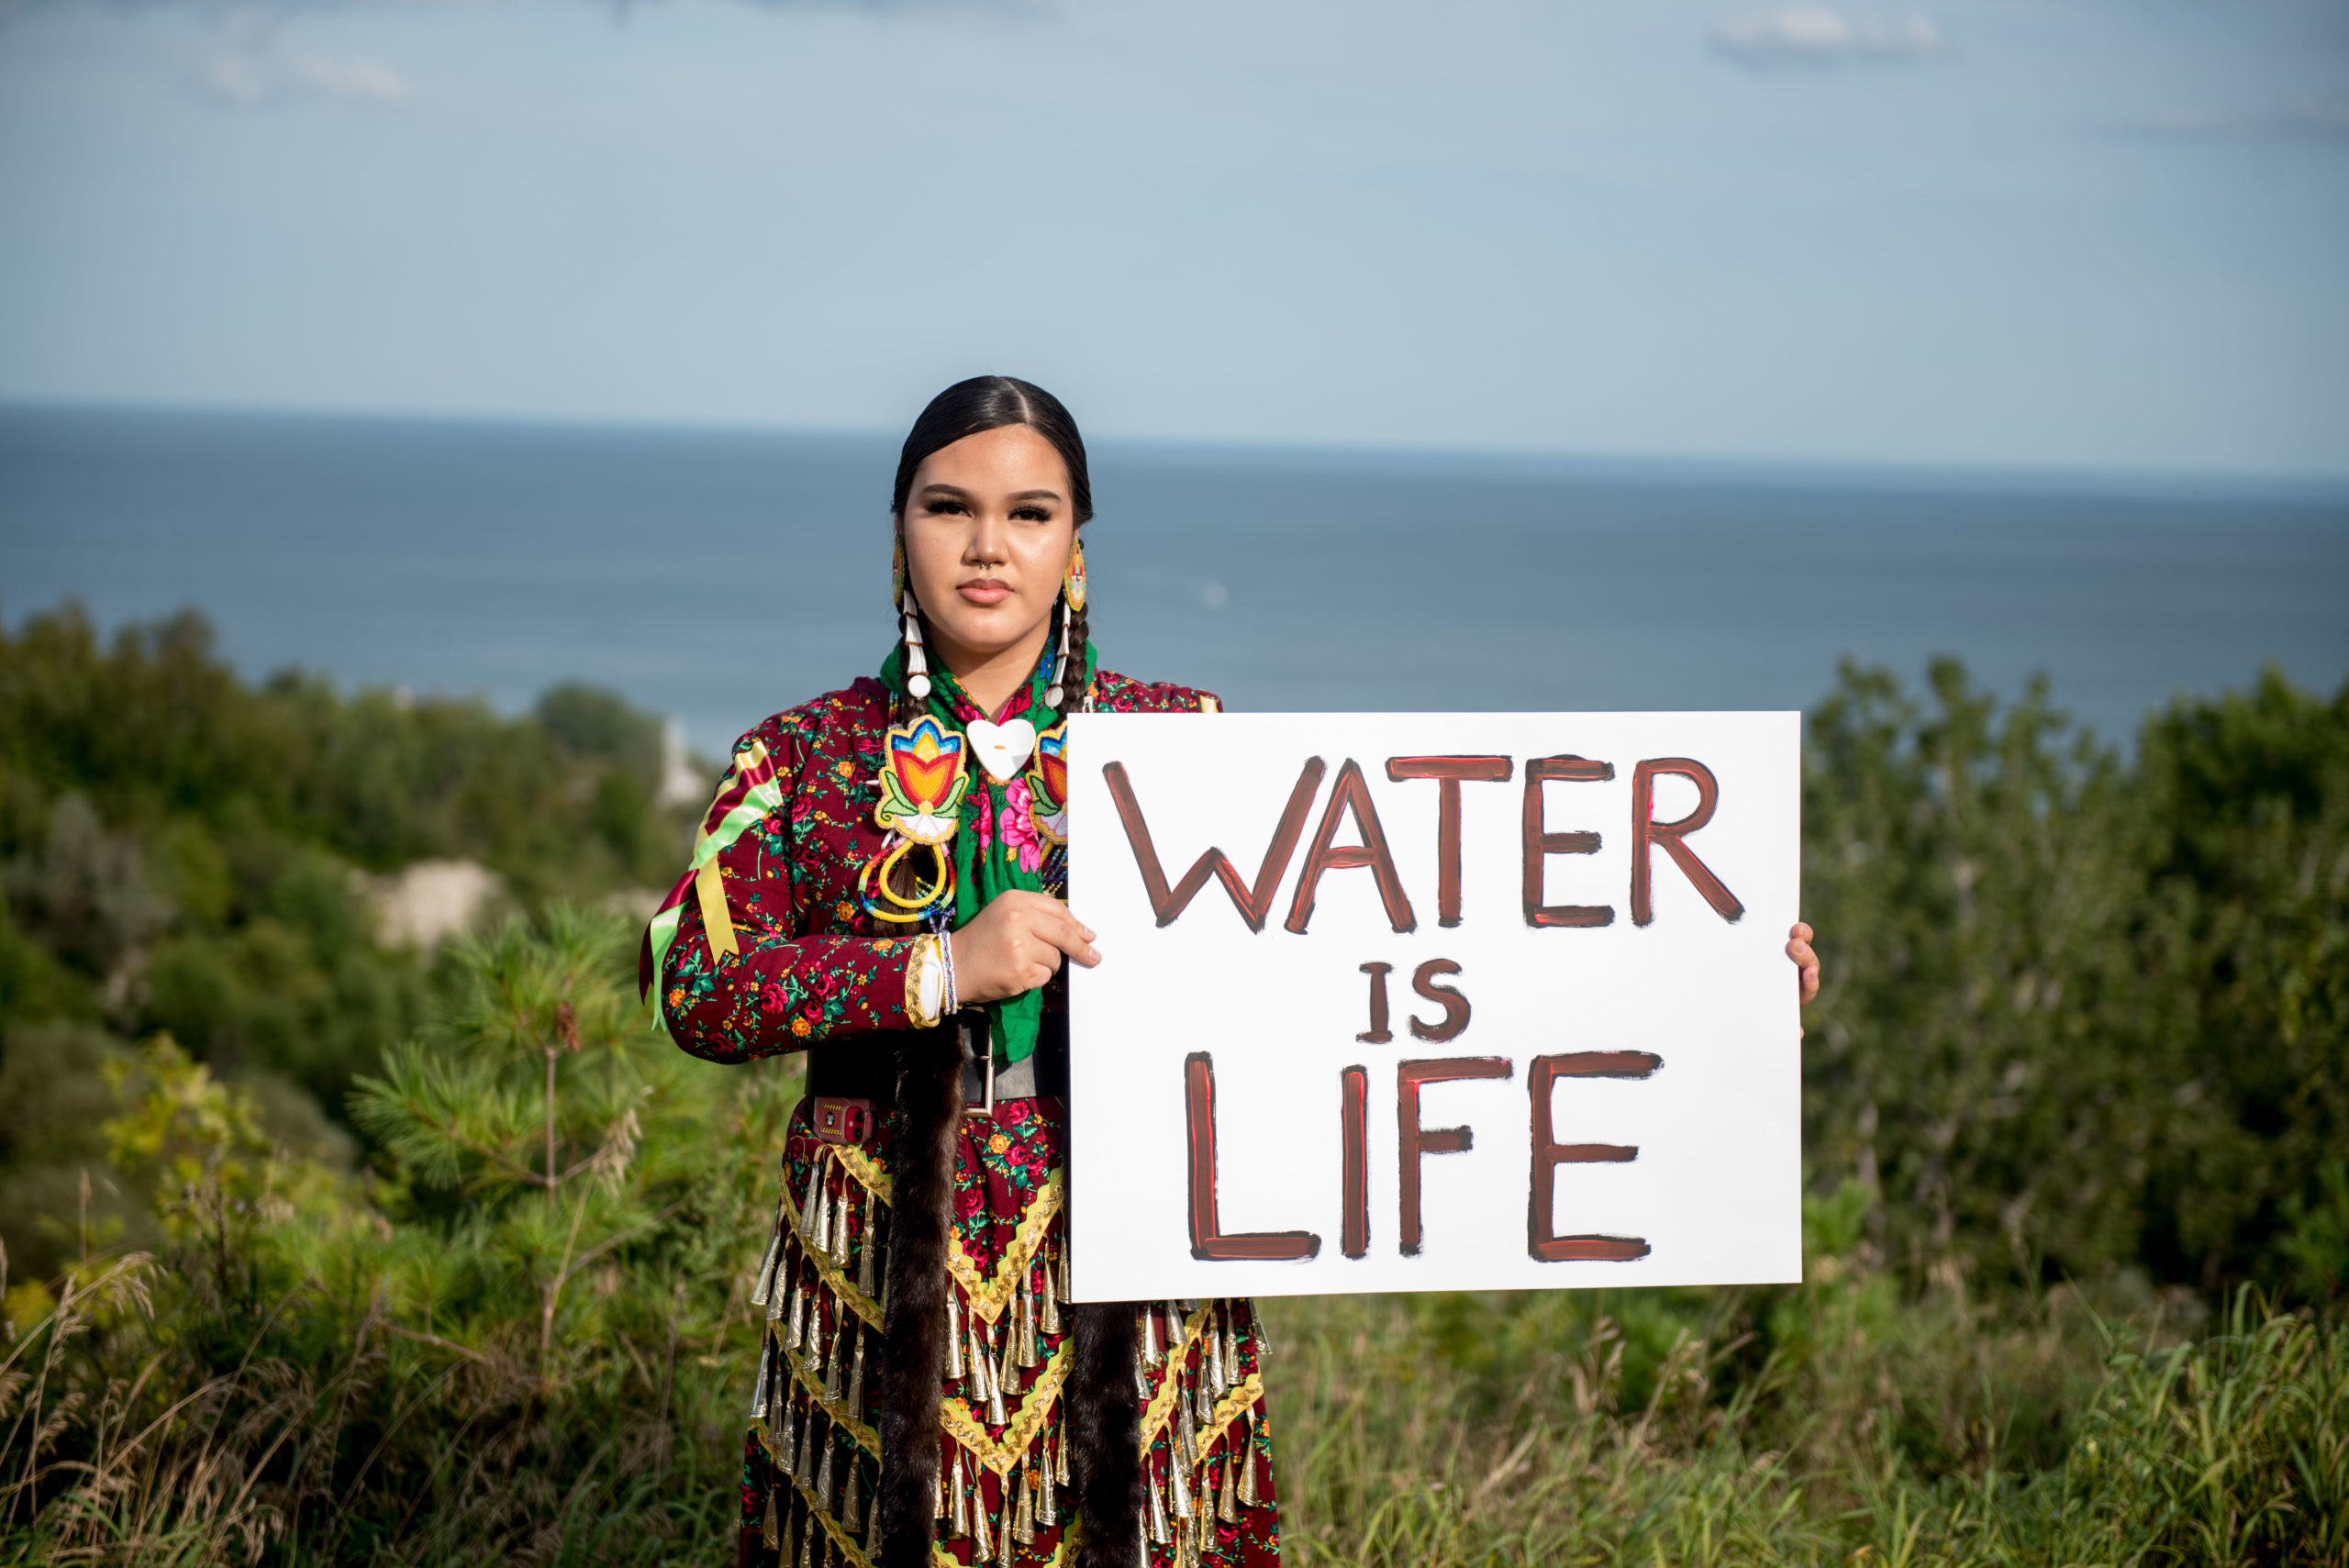 Image of Indigenous woman Emily Dick holding a sign saying Water is Life